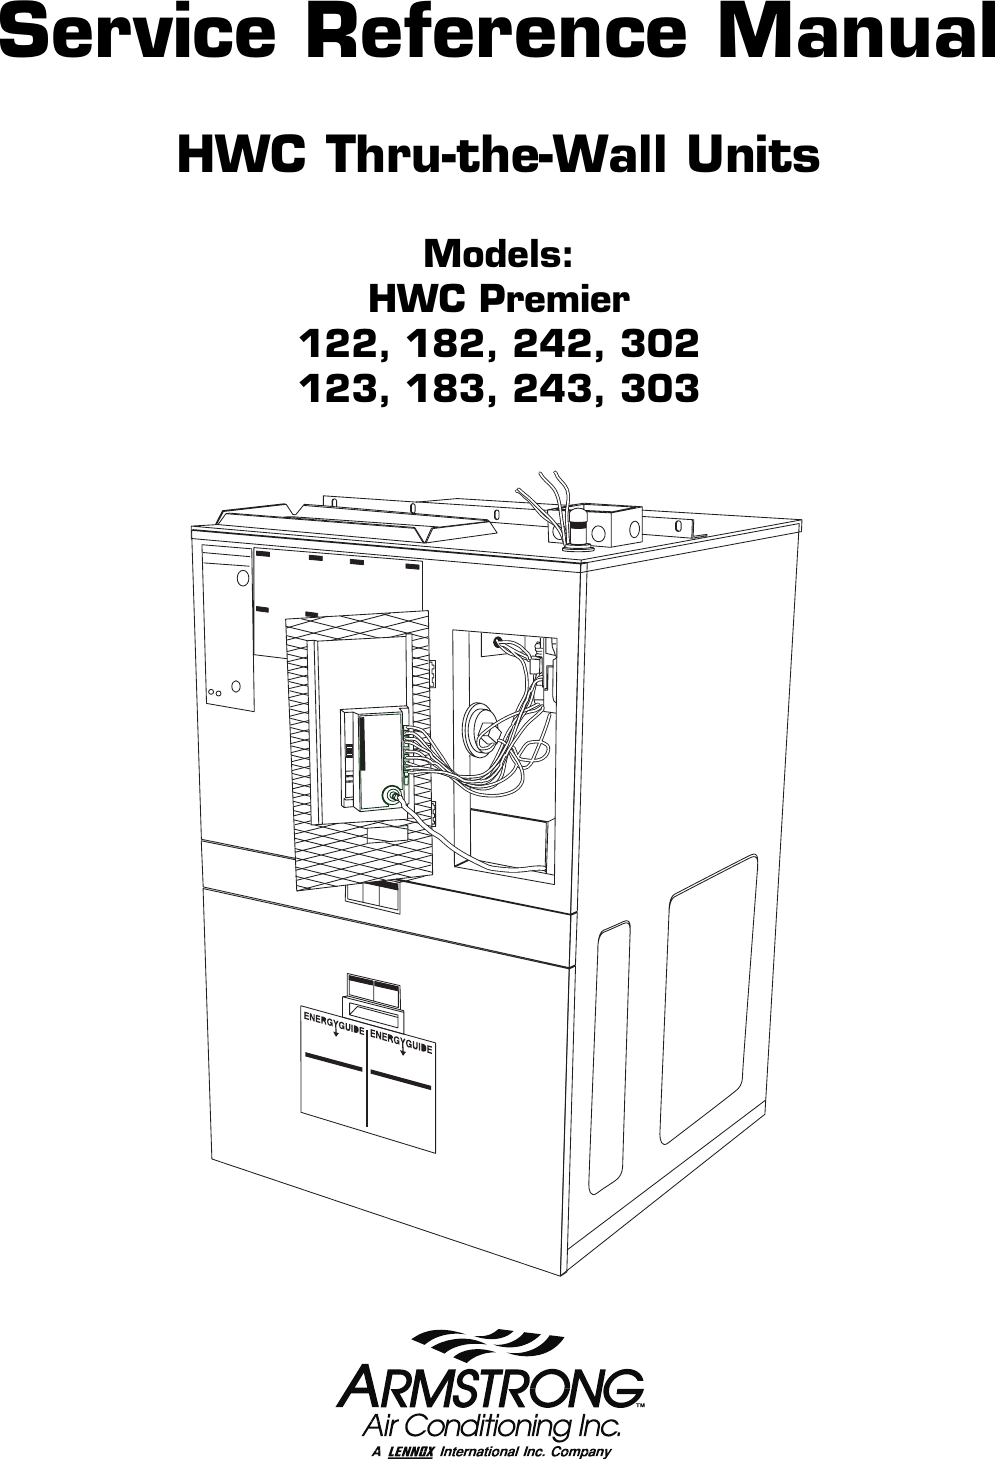 Armstrong World Industries Hwc Premier 183 Users Manual TOC